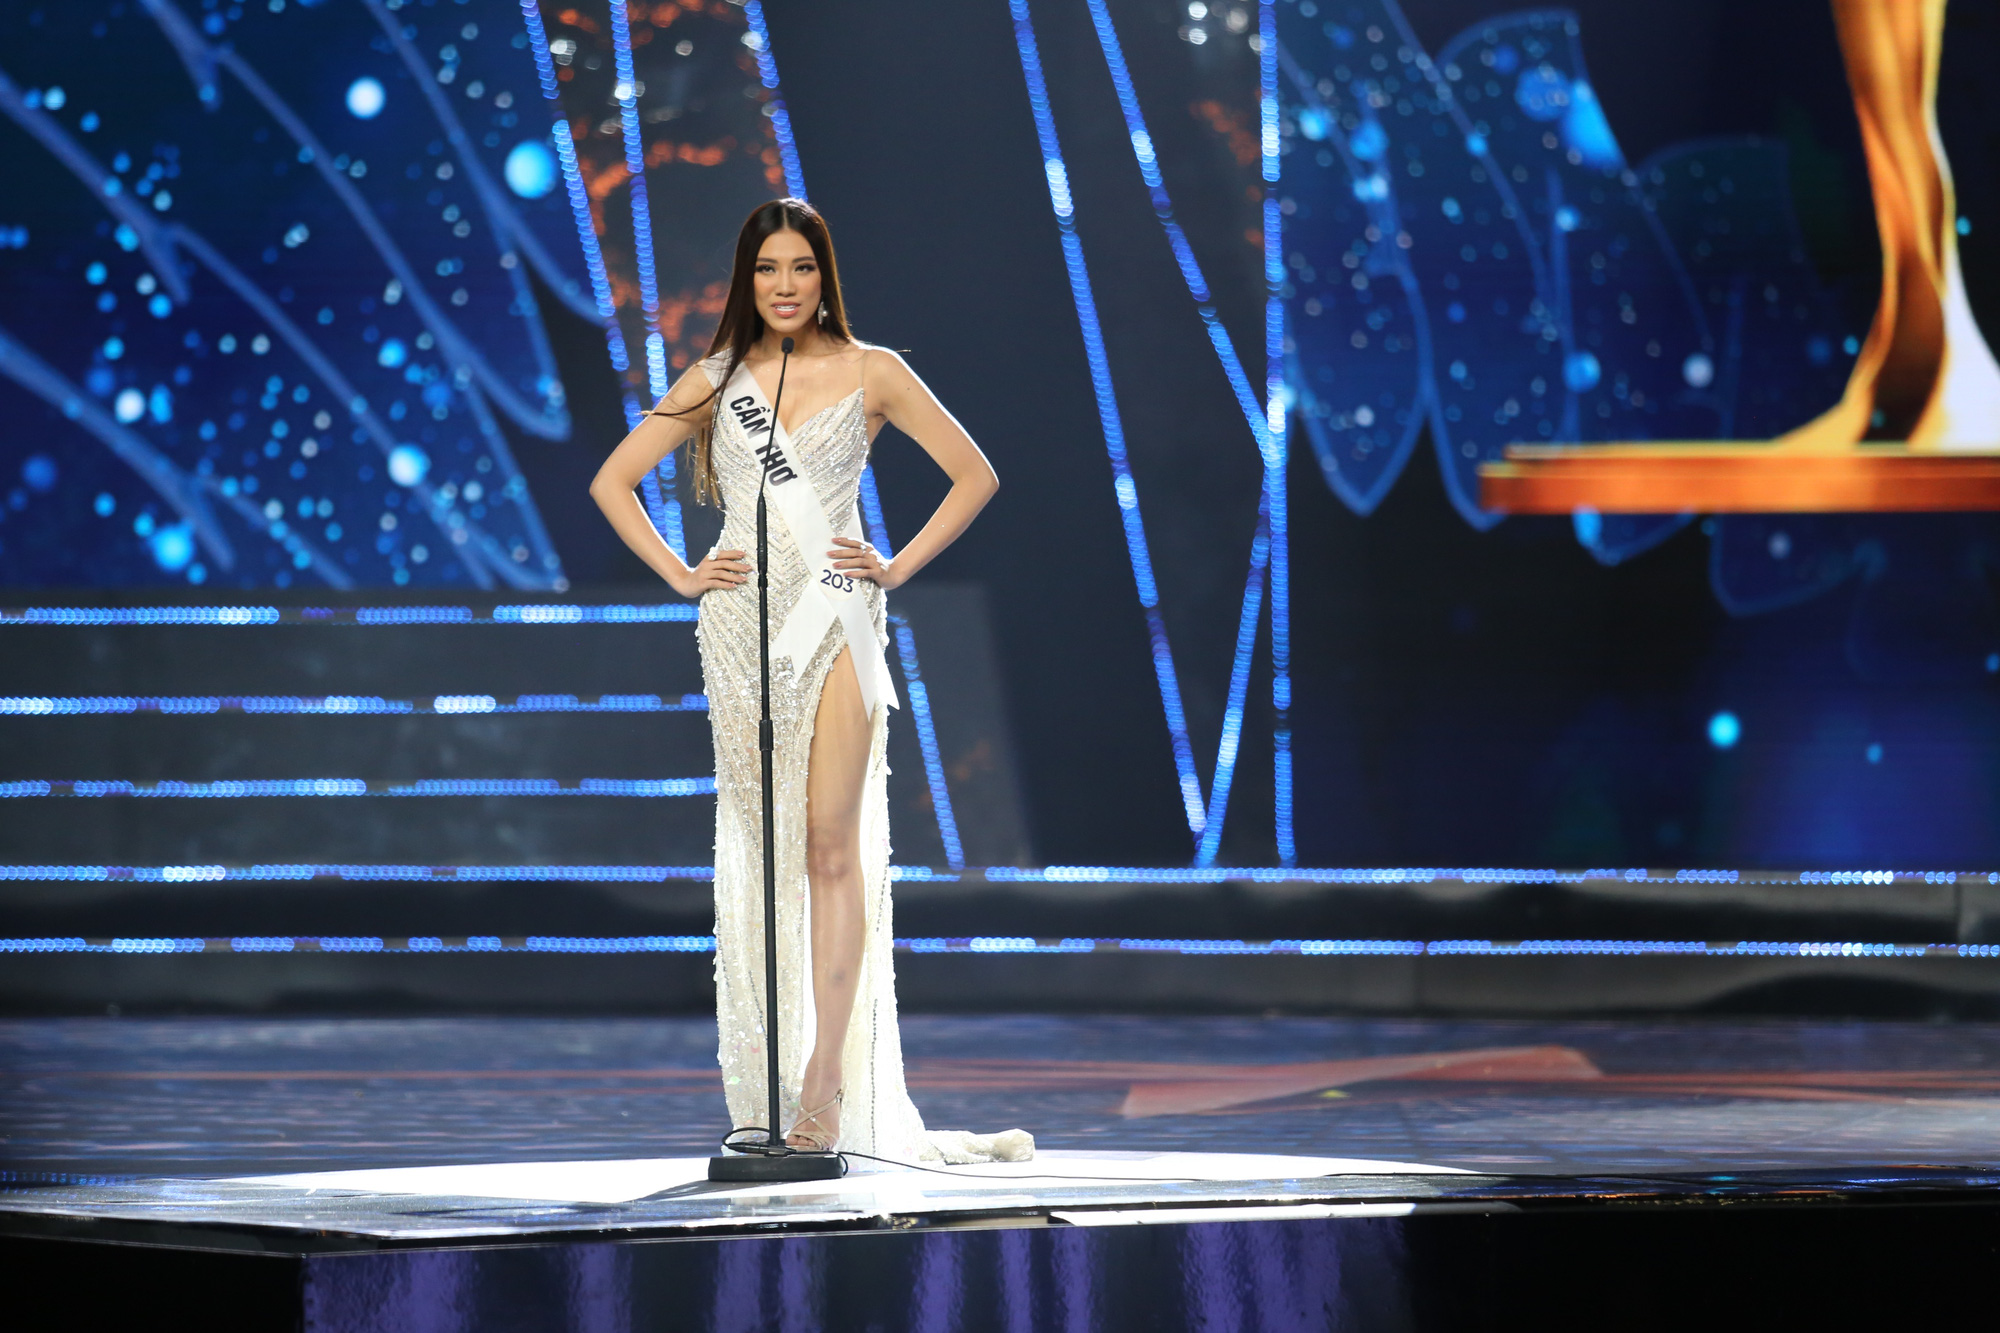 Nguyen Huynh Kim Duyen, first runner-up of Miss Universe Vietnam 2019